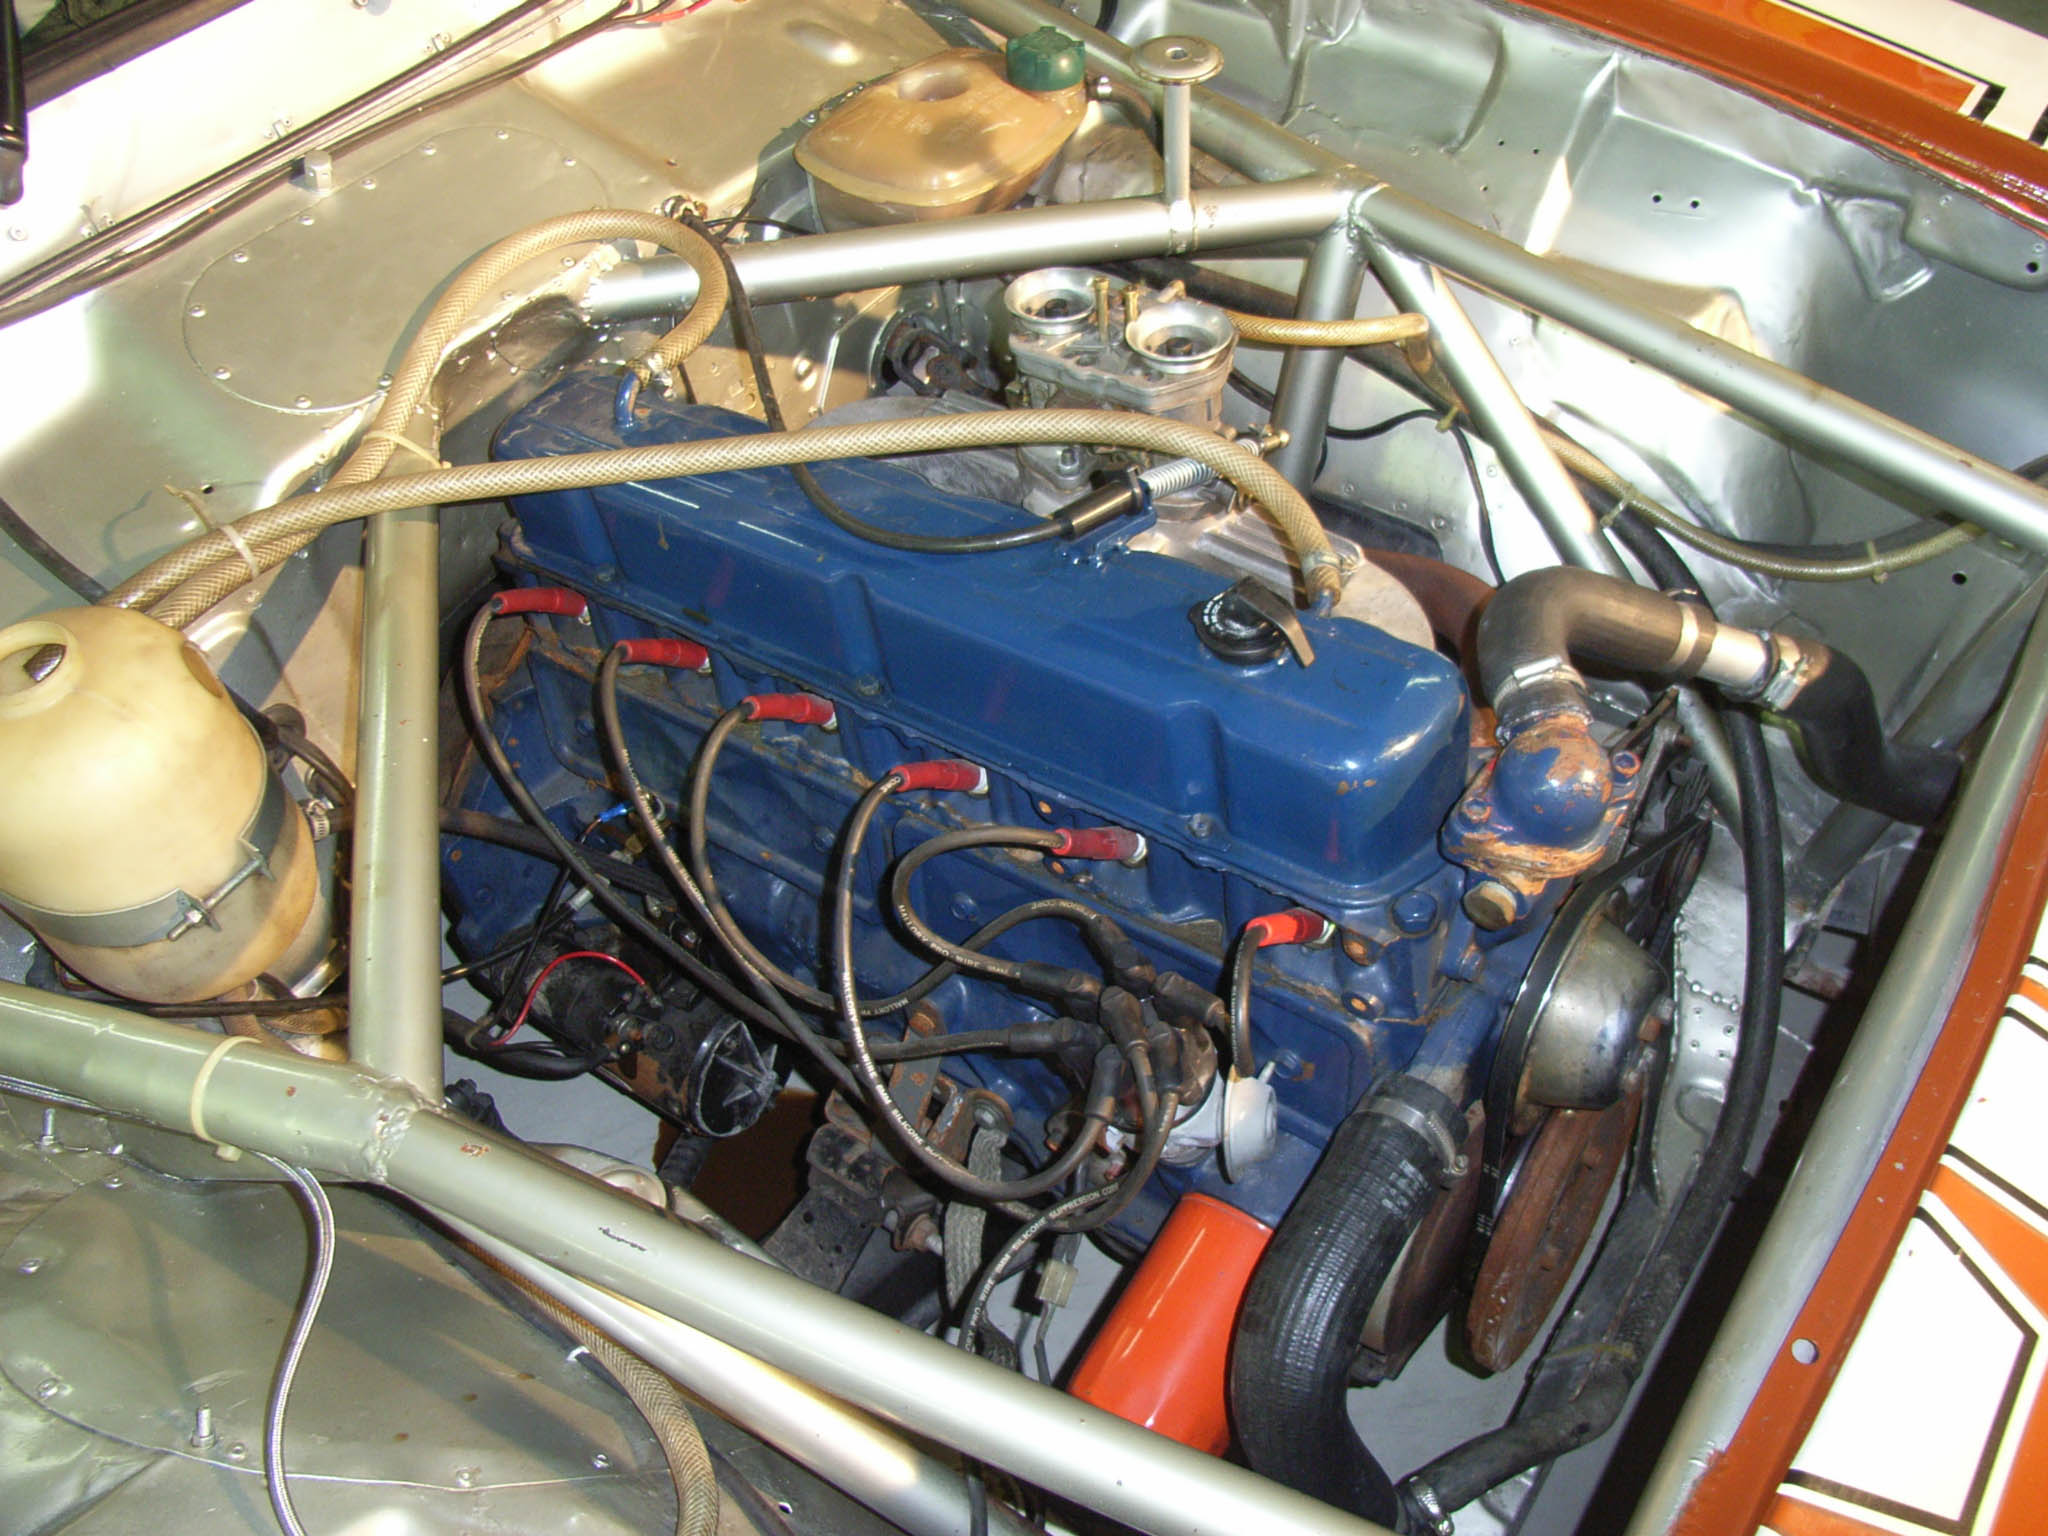 file chevrolet opala 250 s engine jpg wikimedia commons rh commons wikimedia org 350 Chevy Cooling System Diagram 2005 Chevy Malibu Classic Engine Diagram